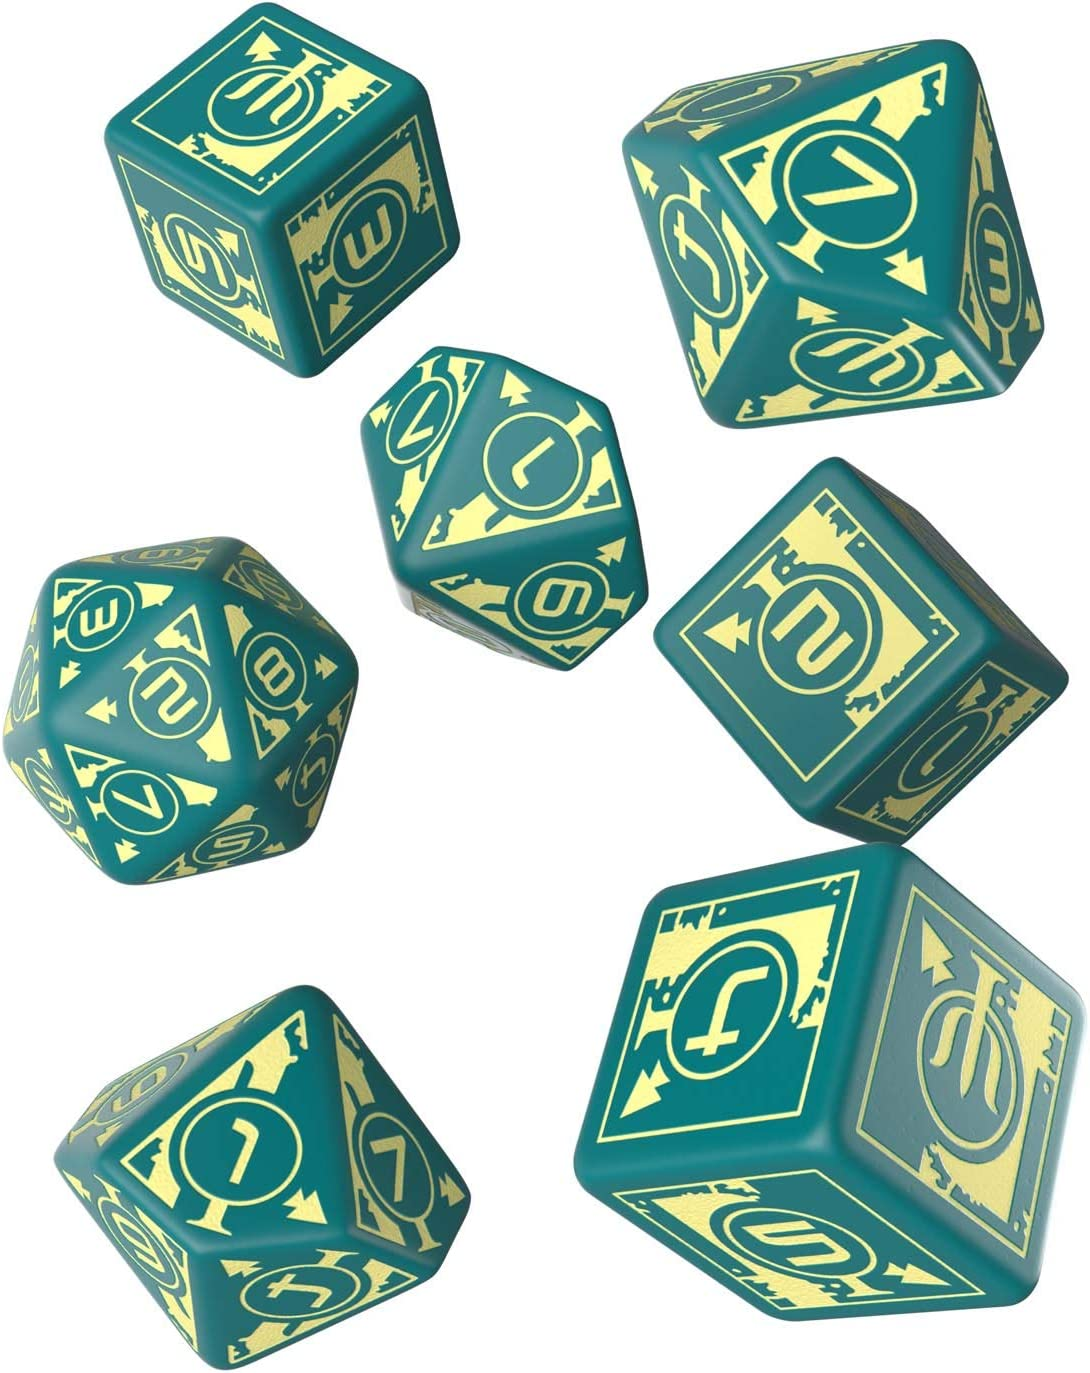 Q WORKSHOP Starfinder Against the Aeon Throne Rpg Ornamented Dice Set 7 Polyhedral Pieces